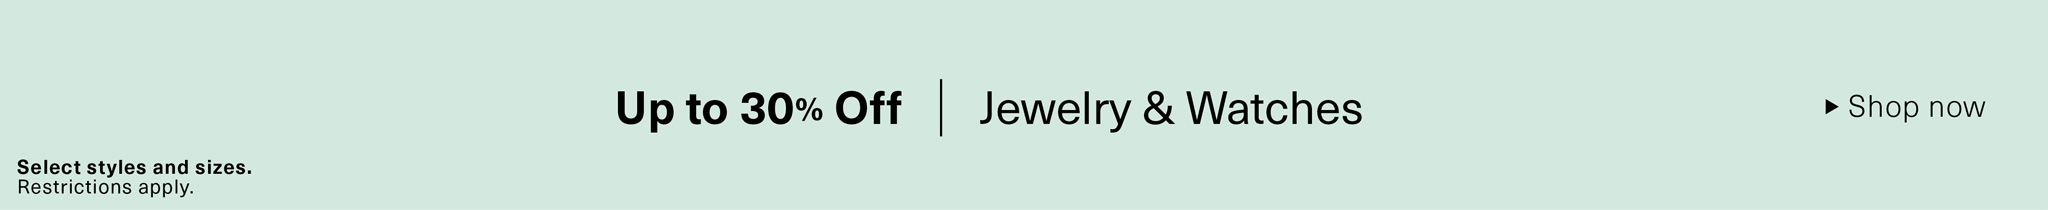 Up to 30% Off Jewelry & Watches